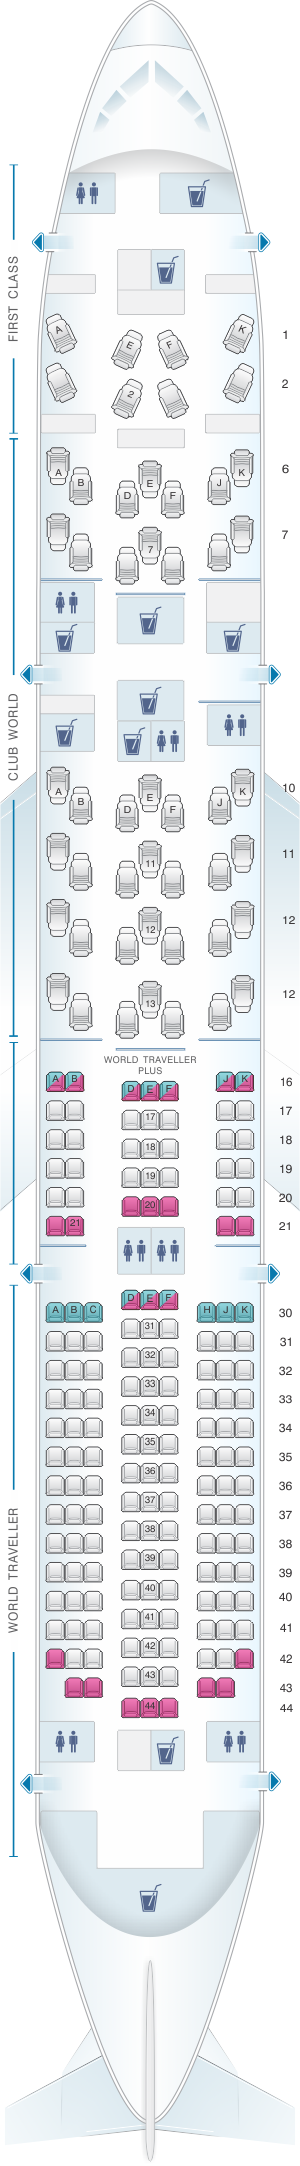 Seat map for British Airways Boeing B787 9